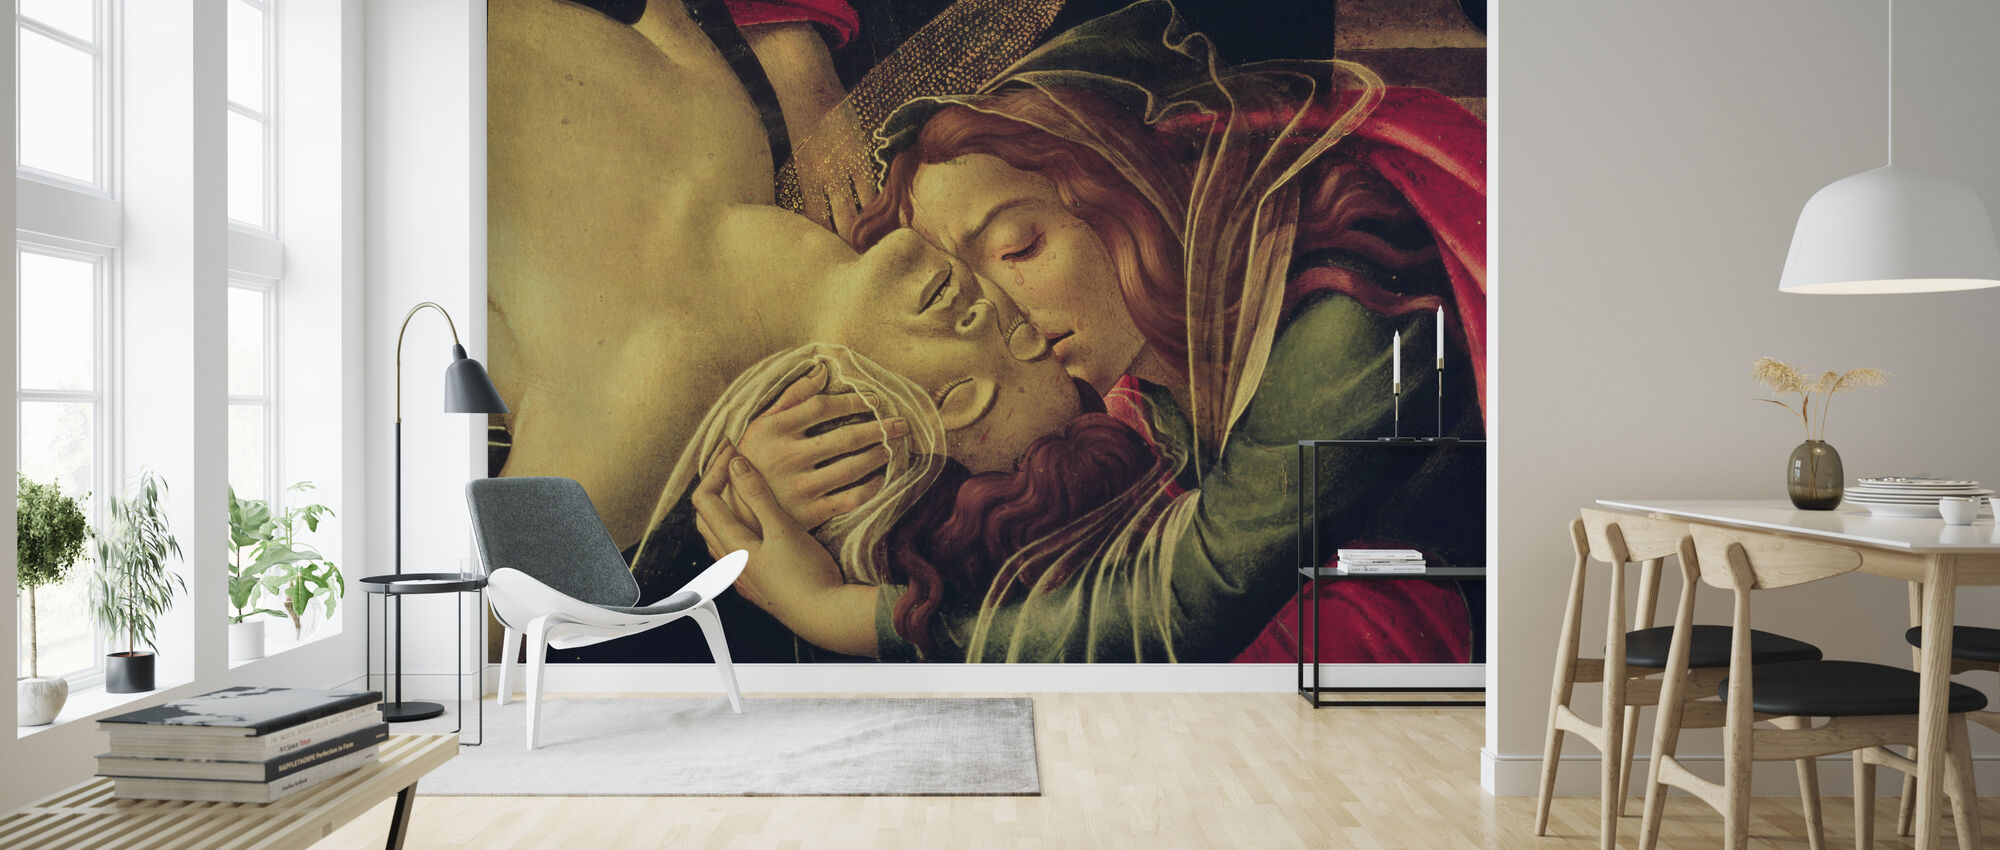 Lamentation of Christ - Sandro Botticelli - Wallpaper - Living Room